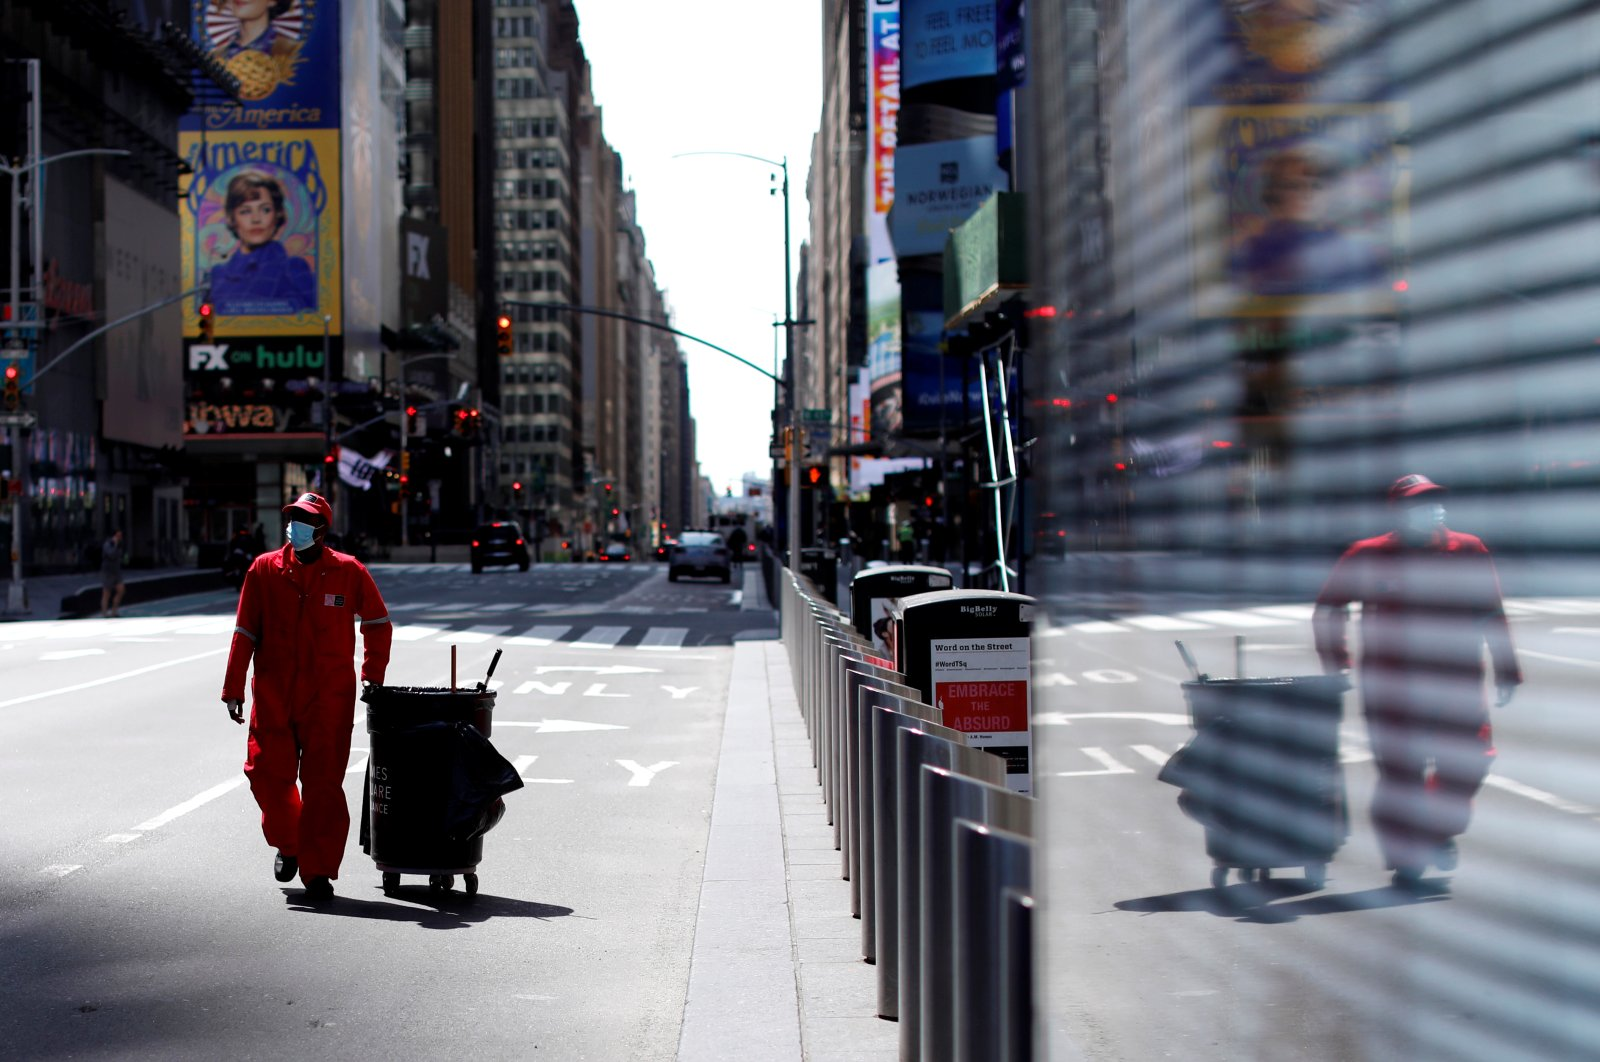 A Times Square Alliance street sweeper walks through a nearly empty Times Square in Manhattan during the outbreak of the coronavirus in New York City, New York, U.S., Tuesday, April 7, 2020. (Reuters Photo)